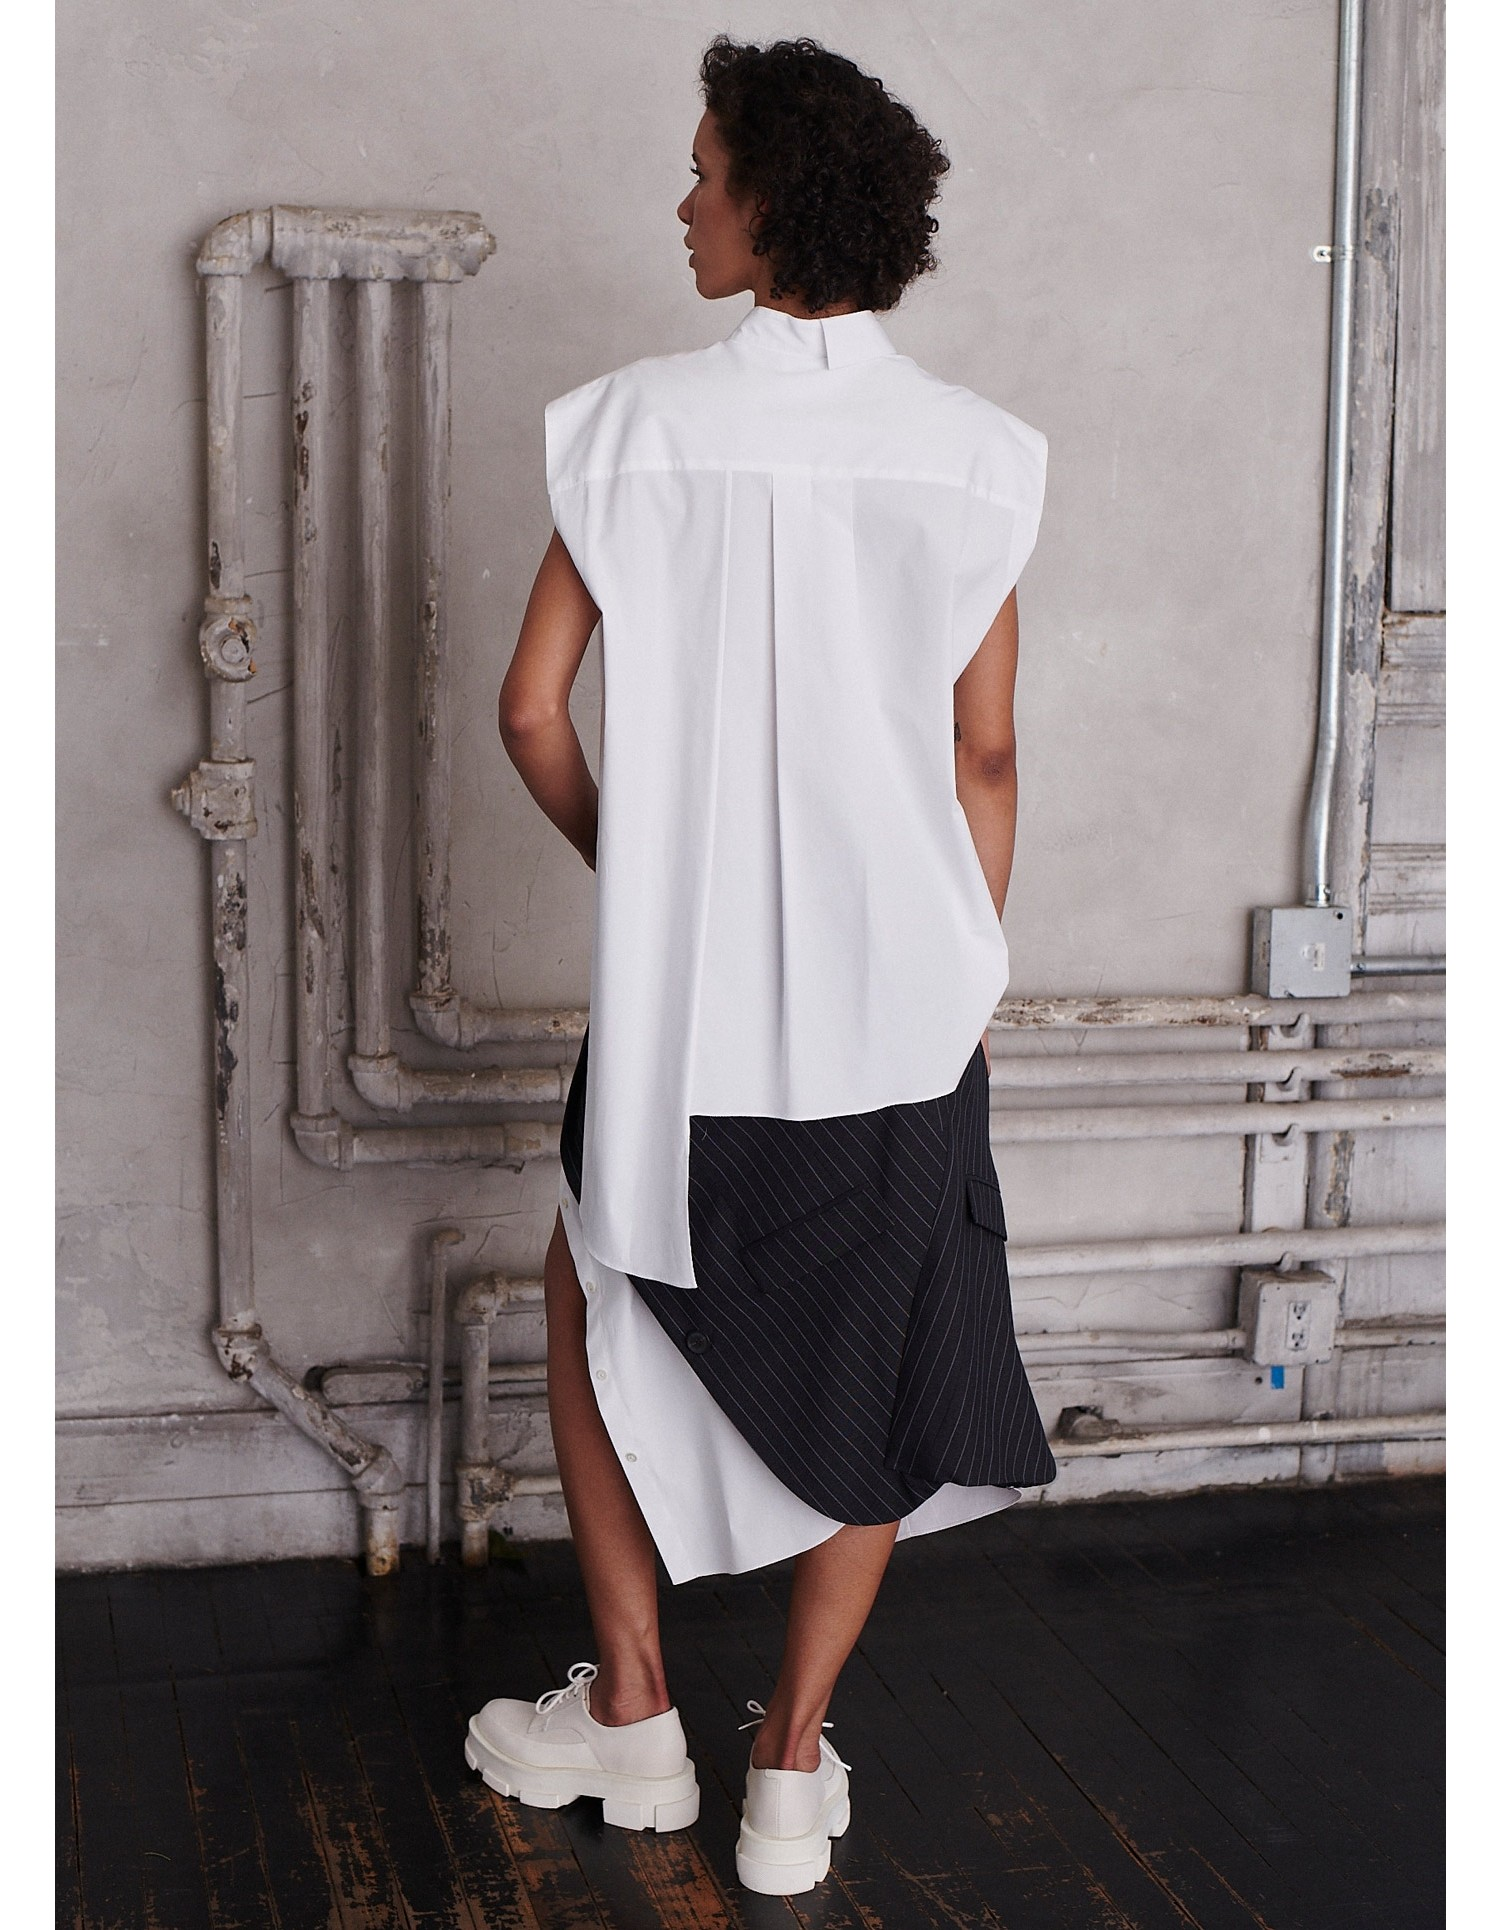 MONSE Half and Half Sleeveless Shirt in White on Model Back View